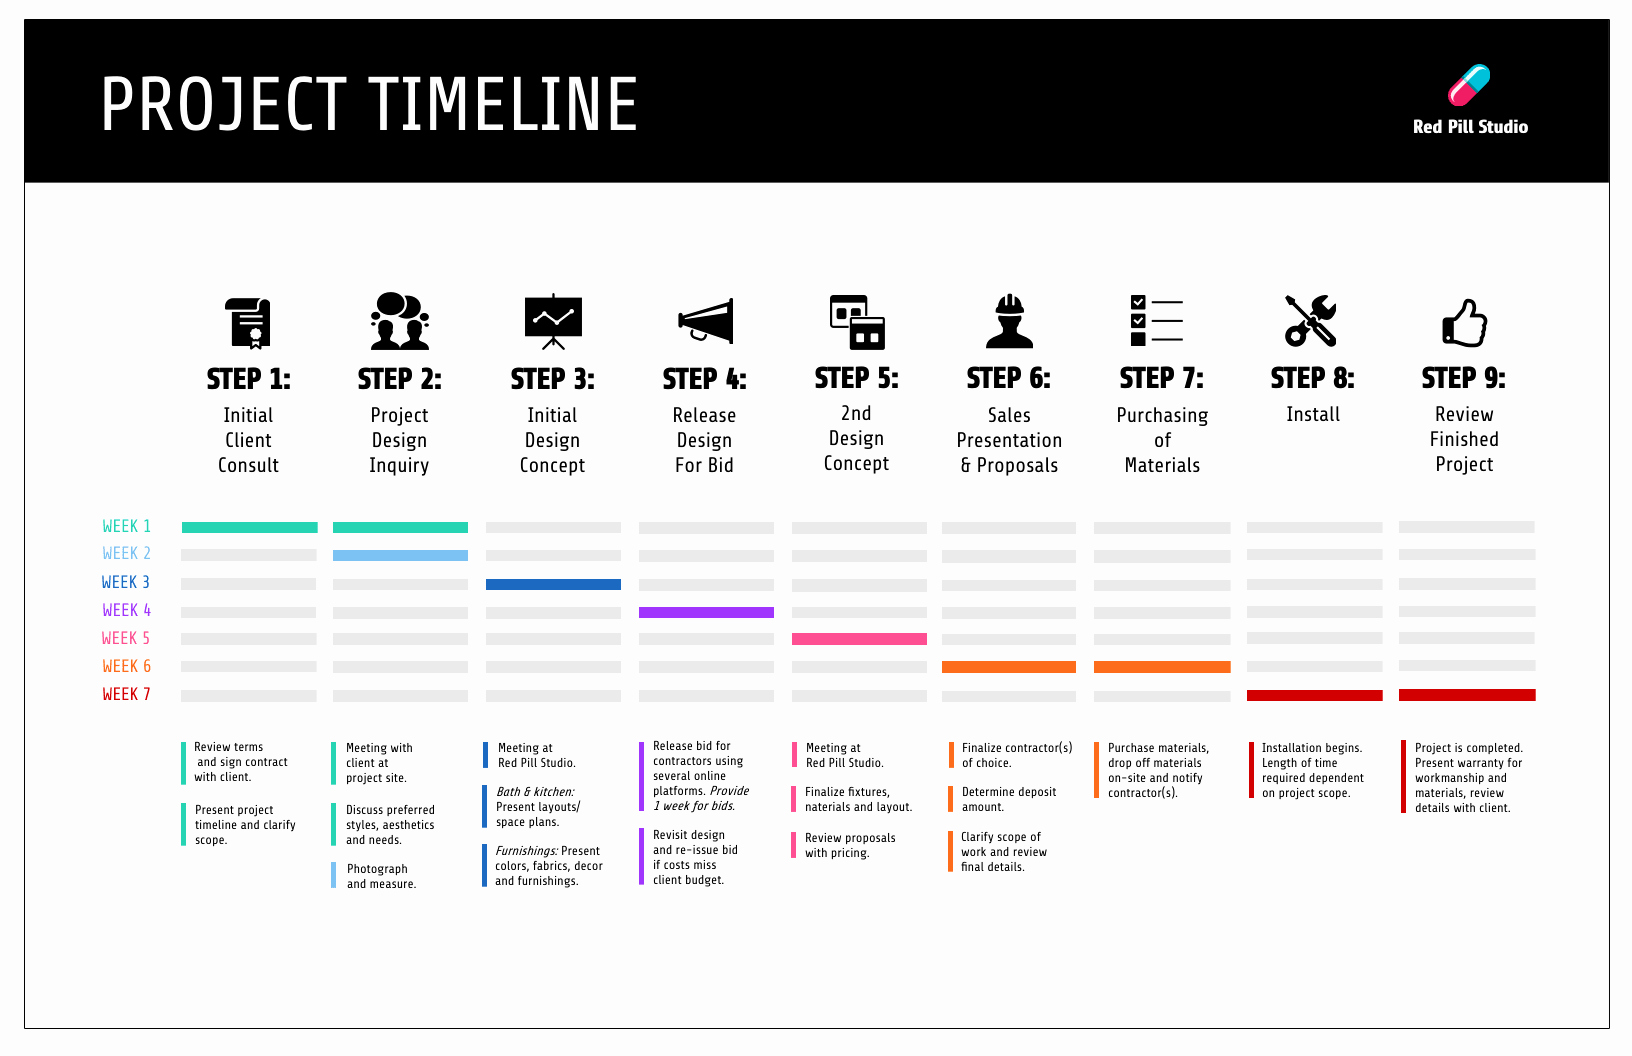 Project Execution Plan Template Beautiful 15 Project Plan Templates & Examples to Align Your Team